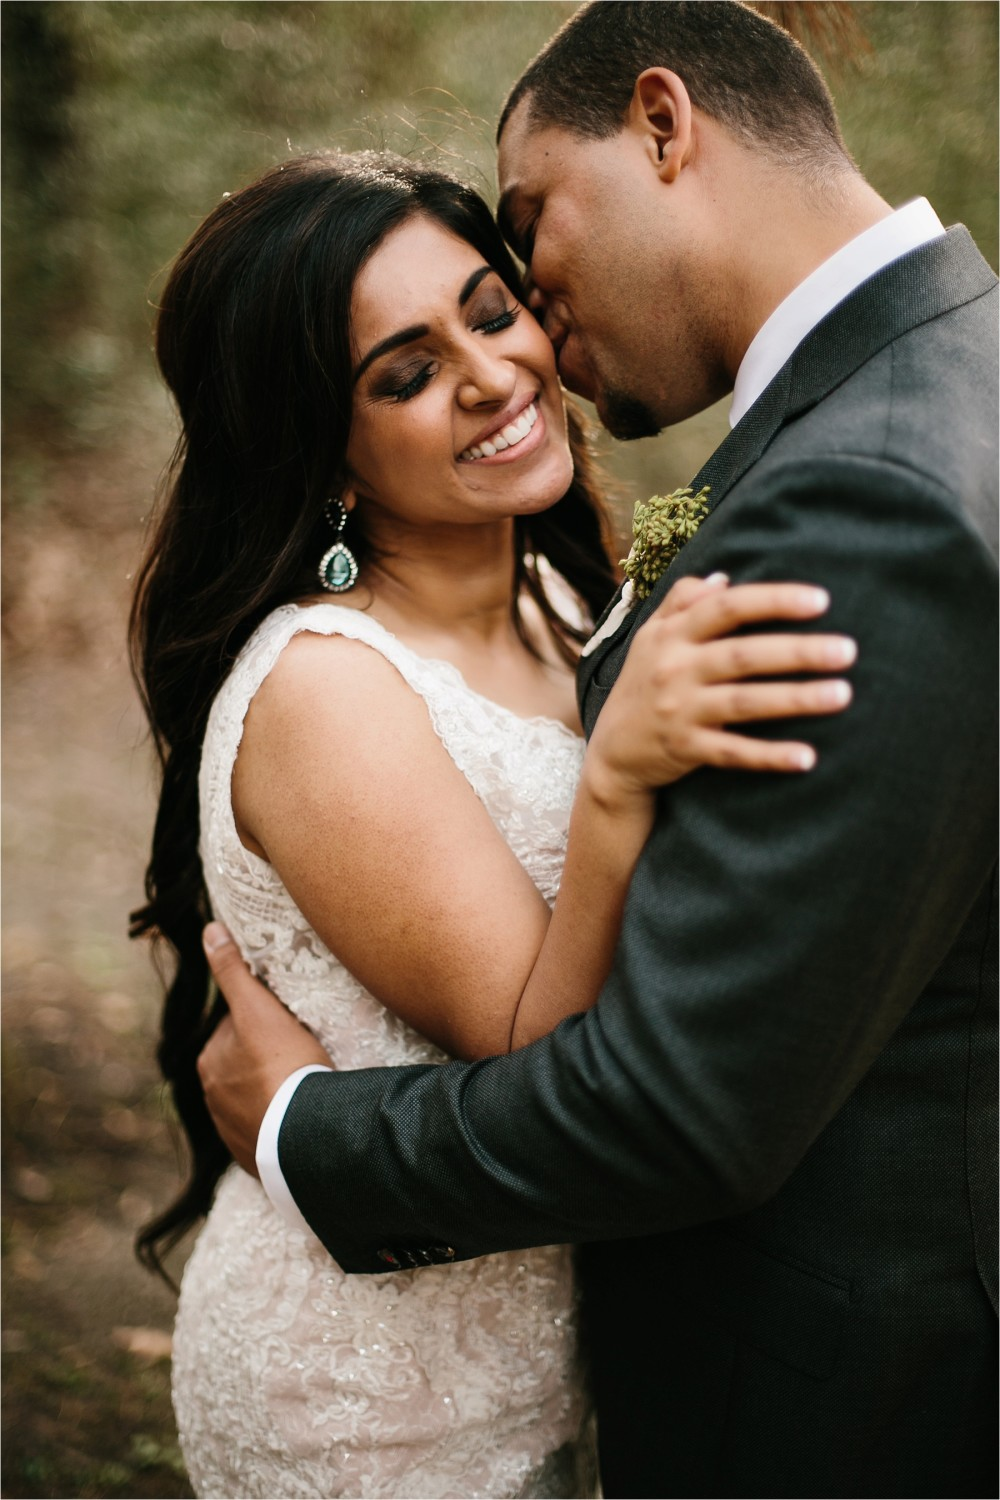 Jeanpaul + Ann __ a colorful wedding at Ashton Gardens in Houston TX by North Texas Wedding Photographer Rachel Meagan Photography _ 54